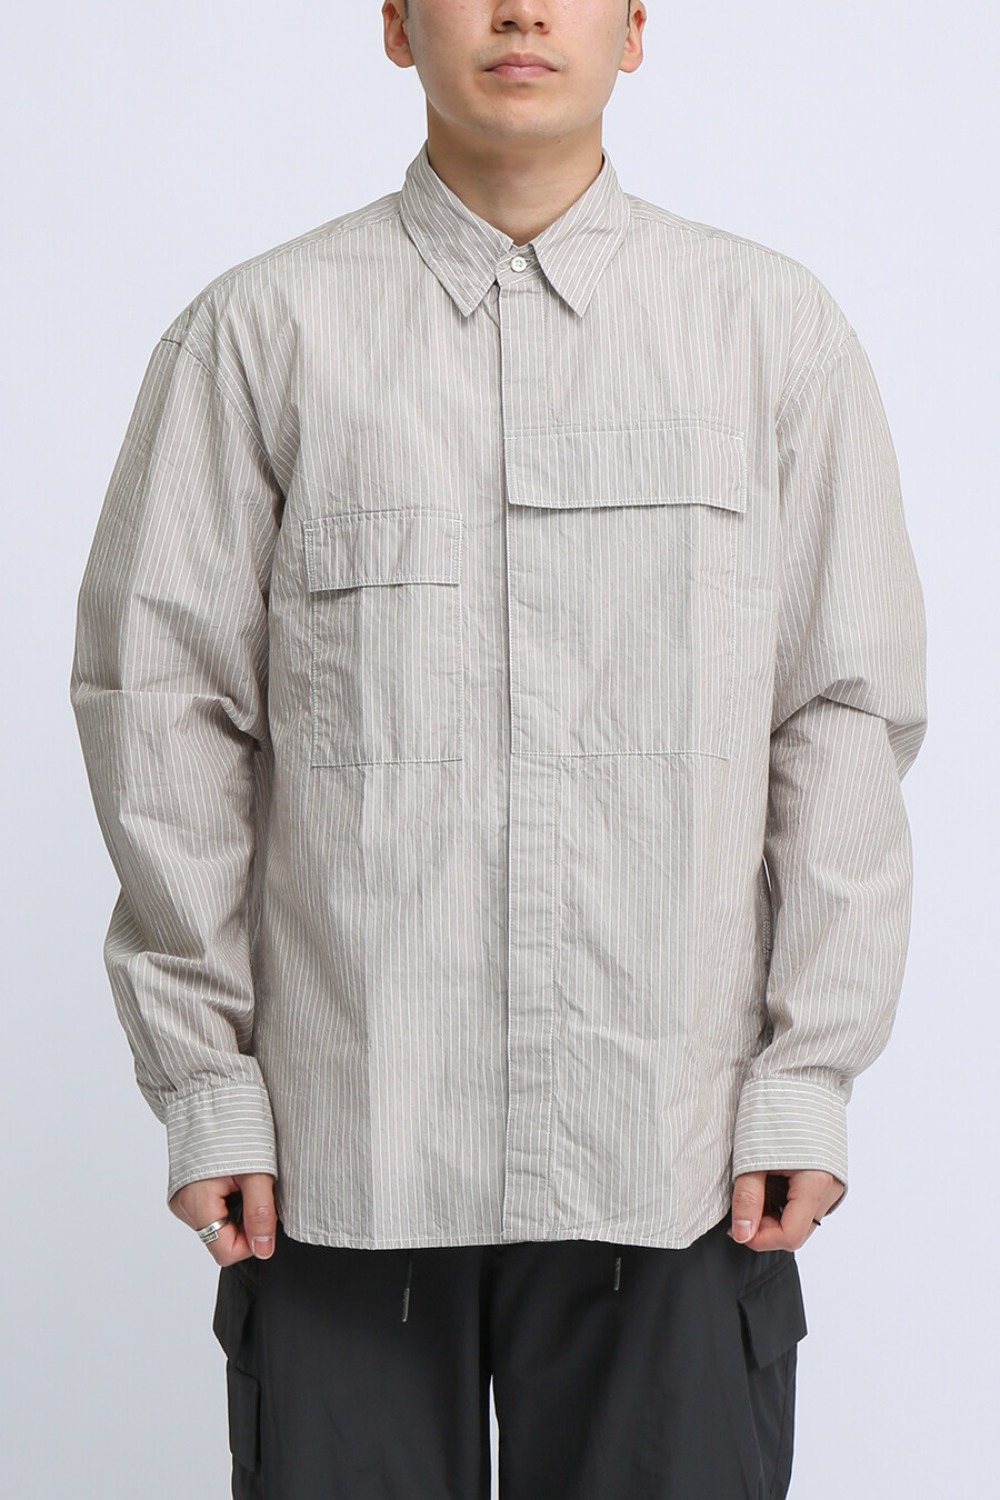 CBA SHIRT BEIGE STRIPE